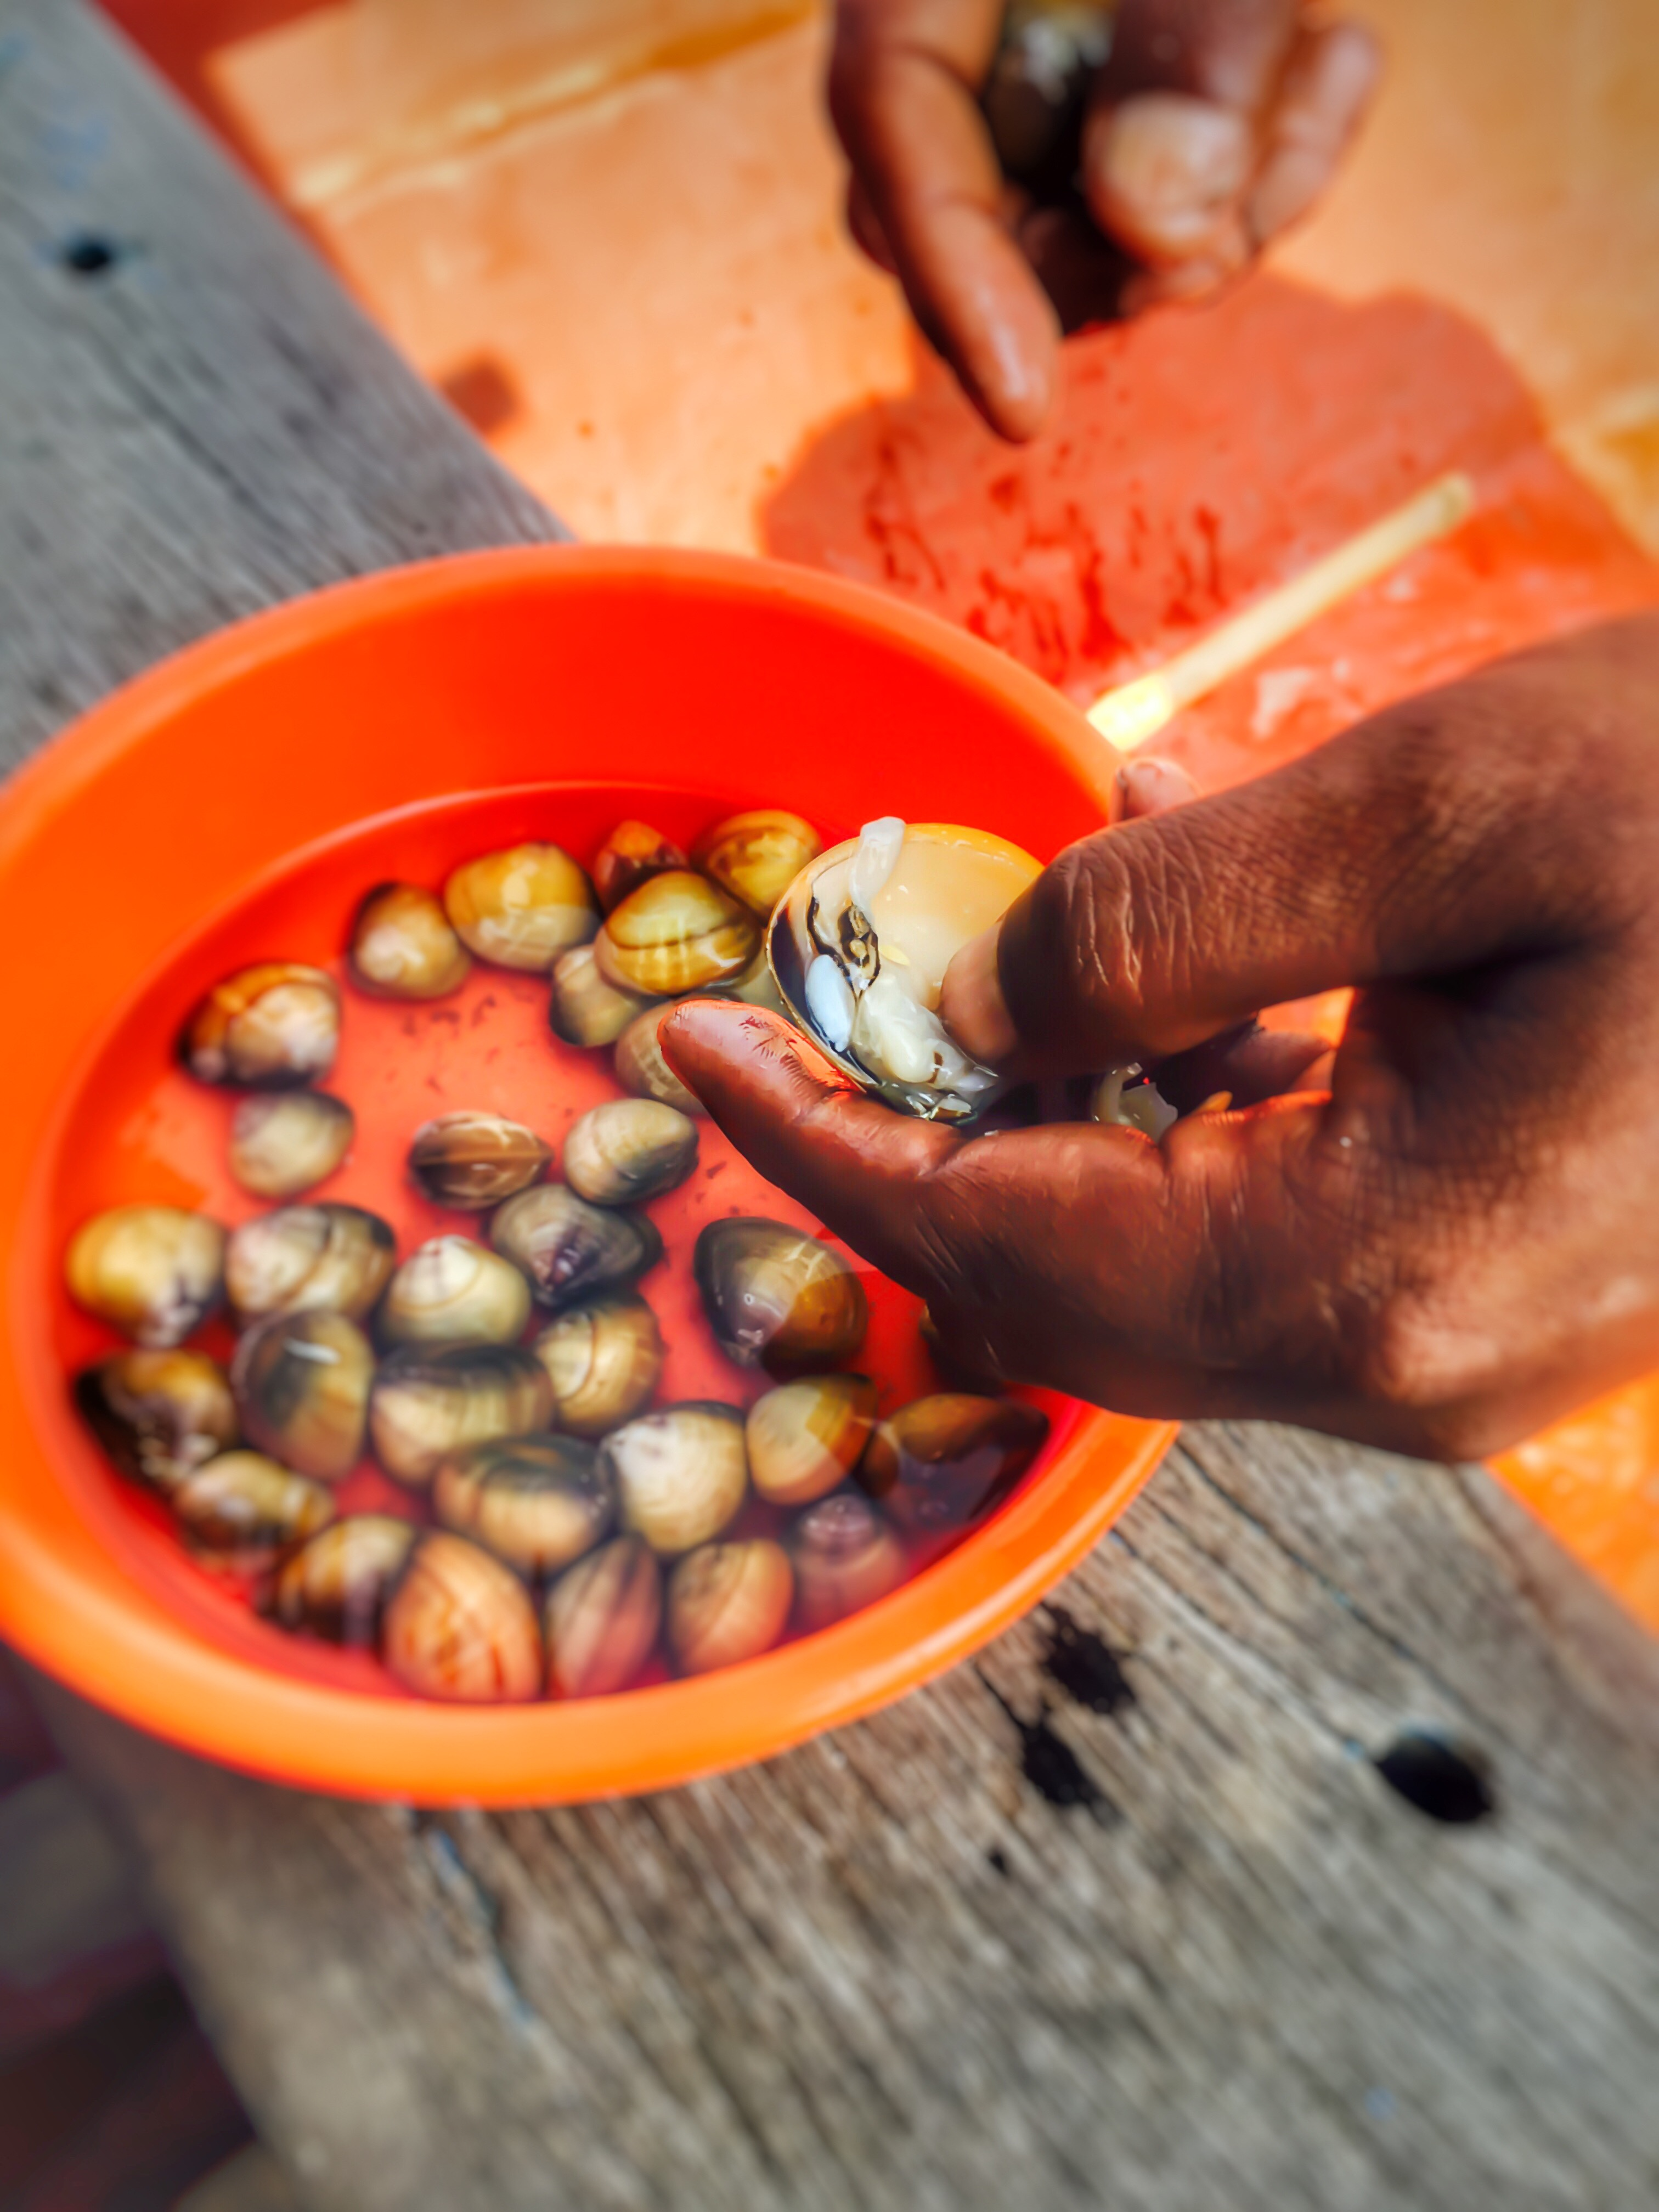 White pearl being extracted from the shell.